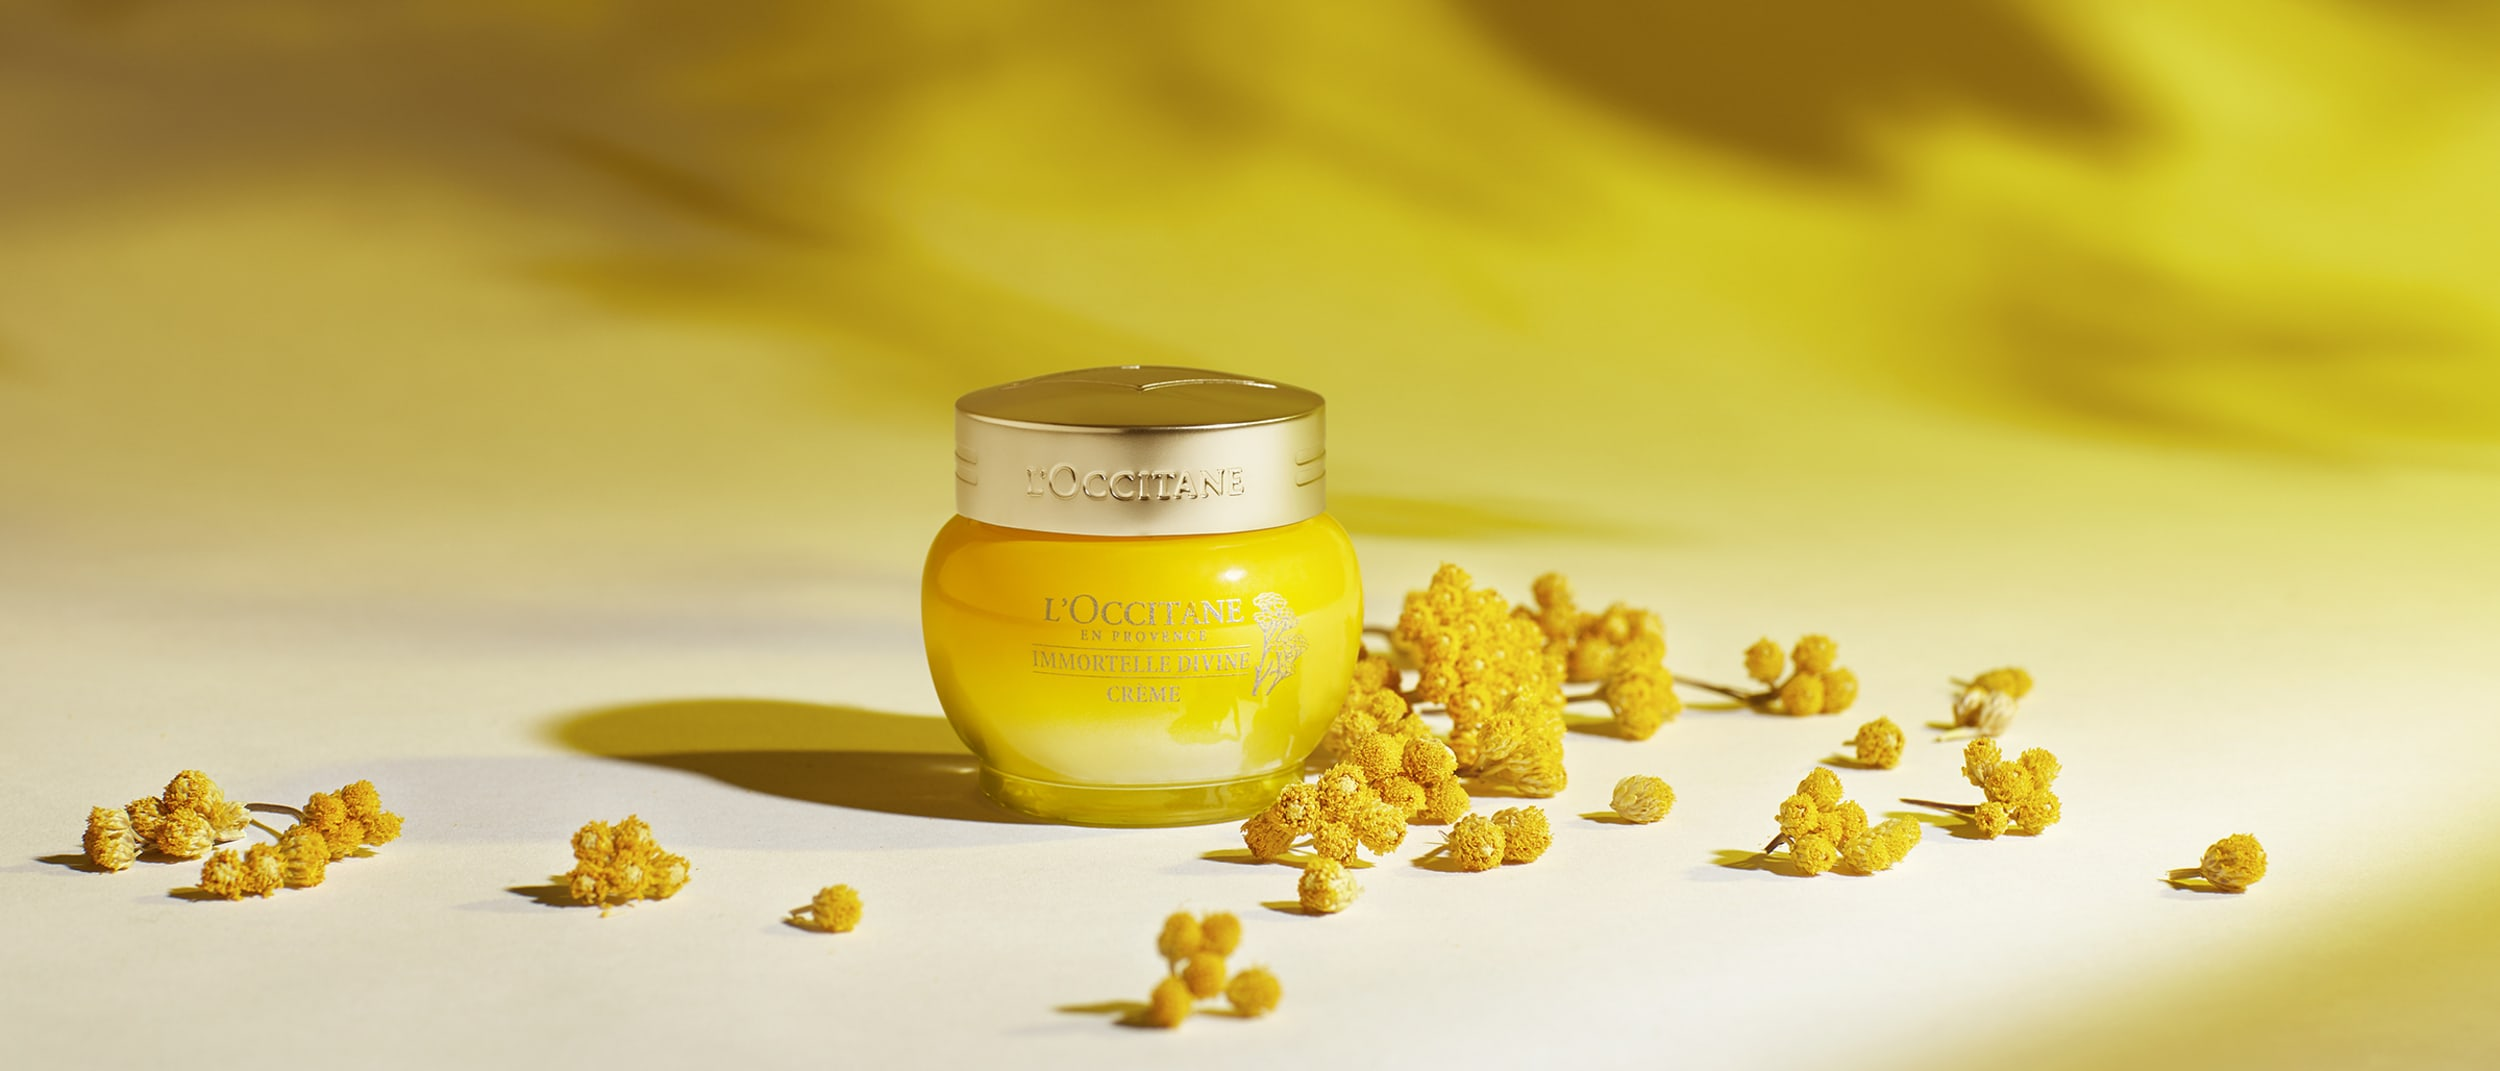 Enjoy a Spa-At-Home moment with L'OCCITANE